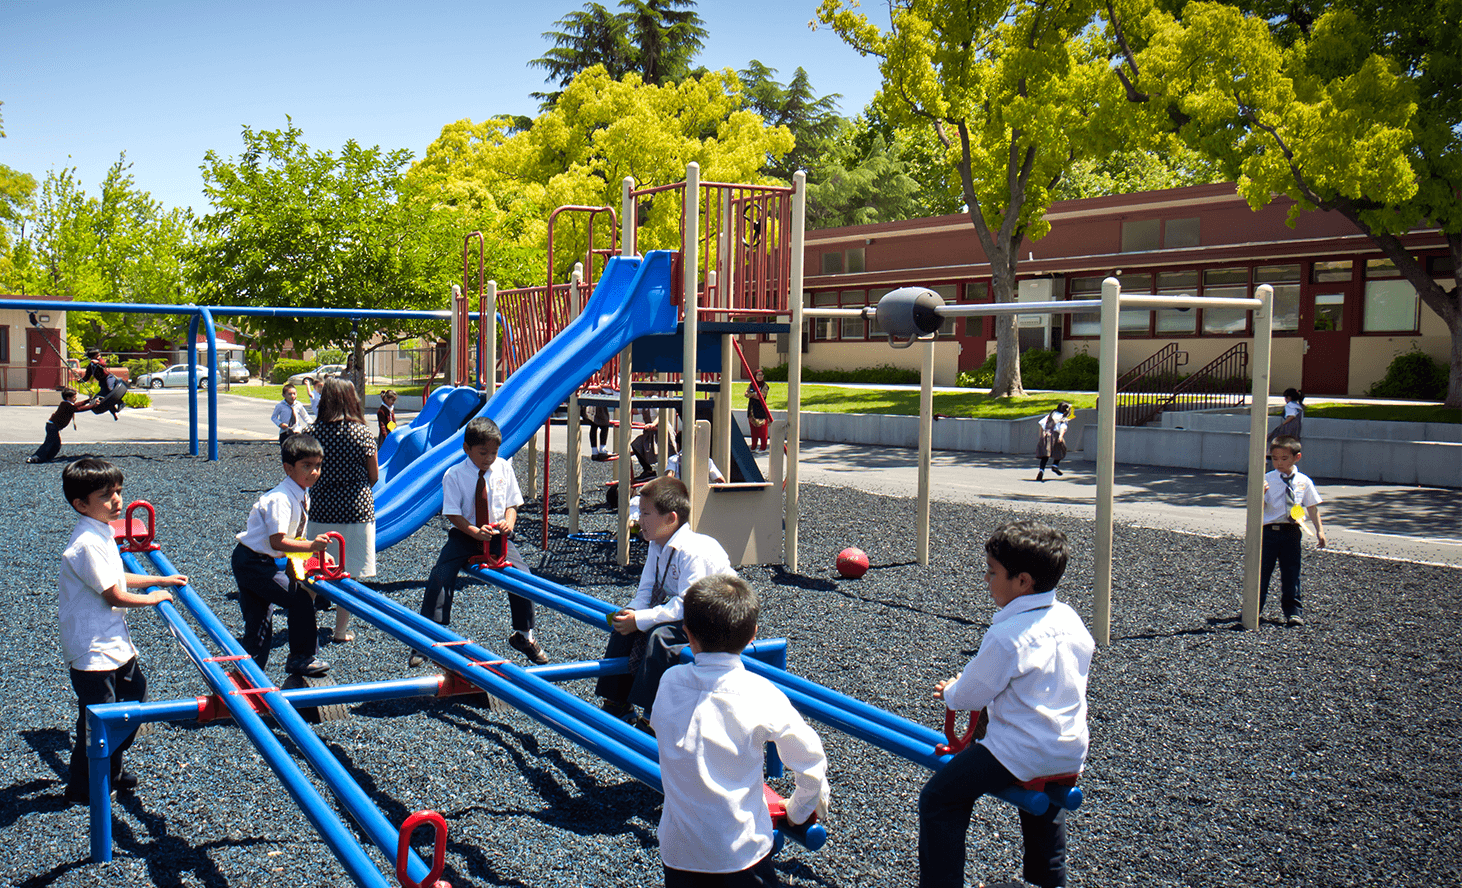 Playground Seesaw | Challenger School - Strawberry Park | Private School In San Jose, California